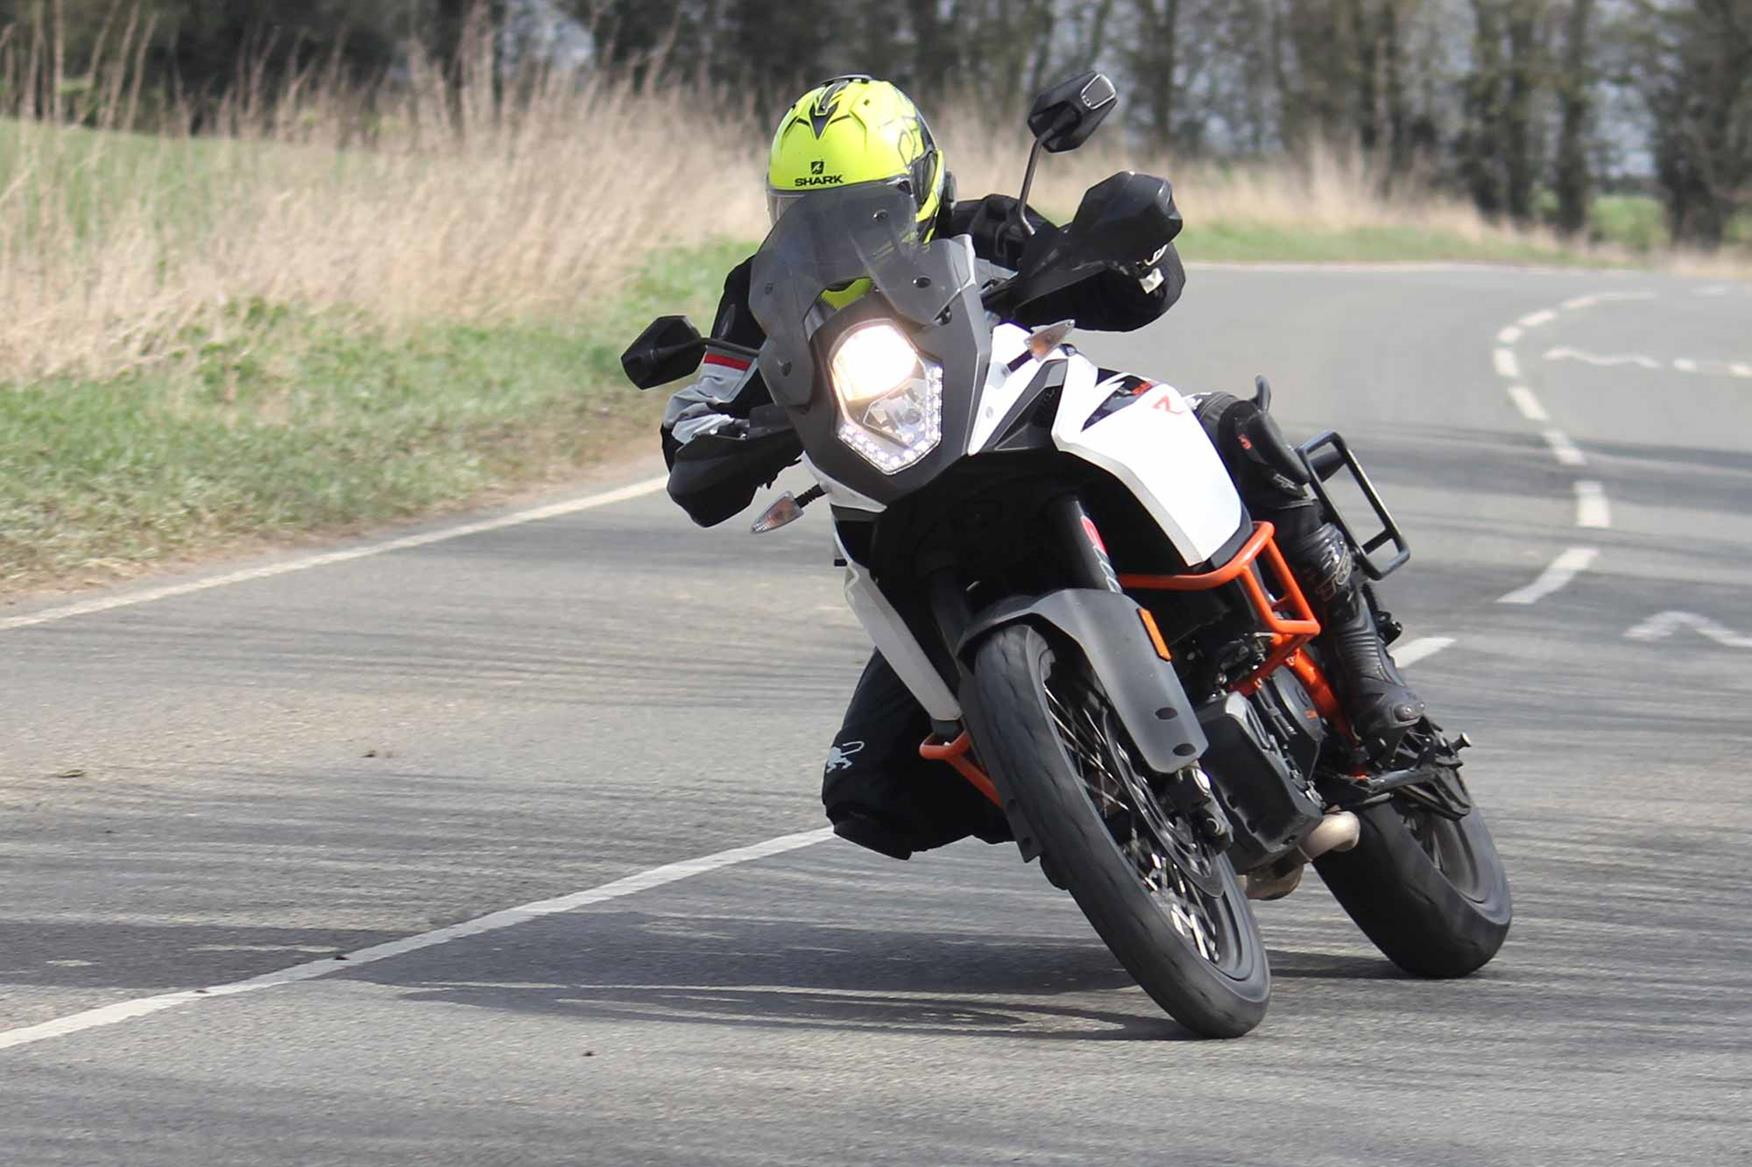 Testing the grip on a KTM 1090 Adventure